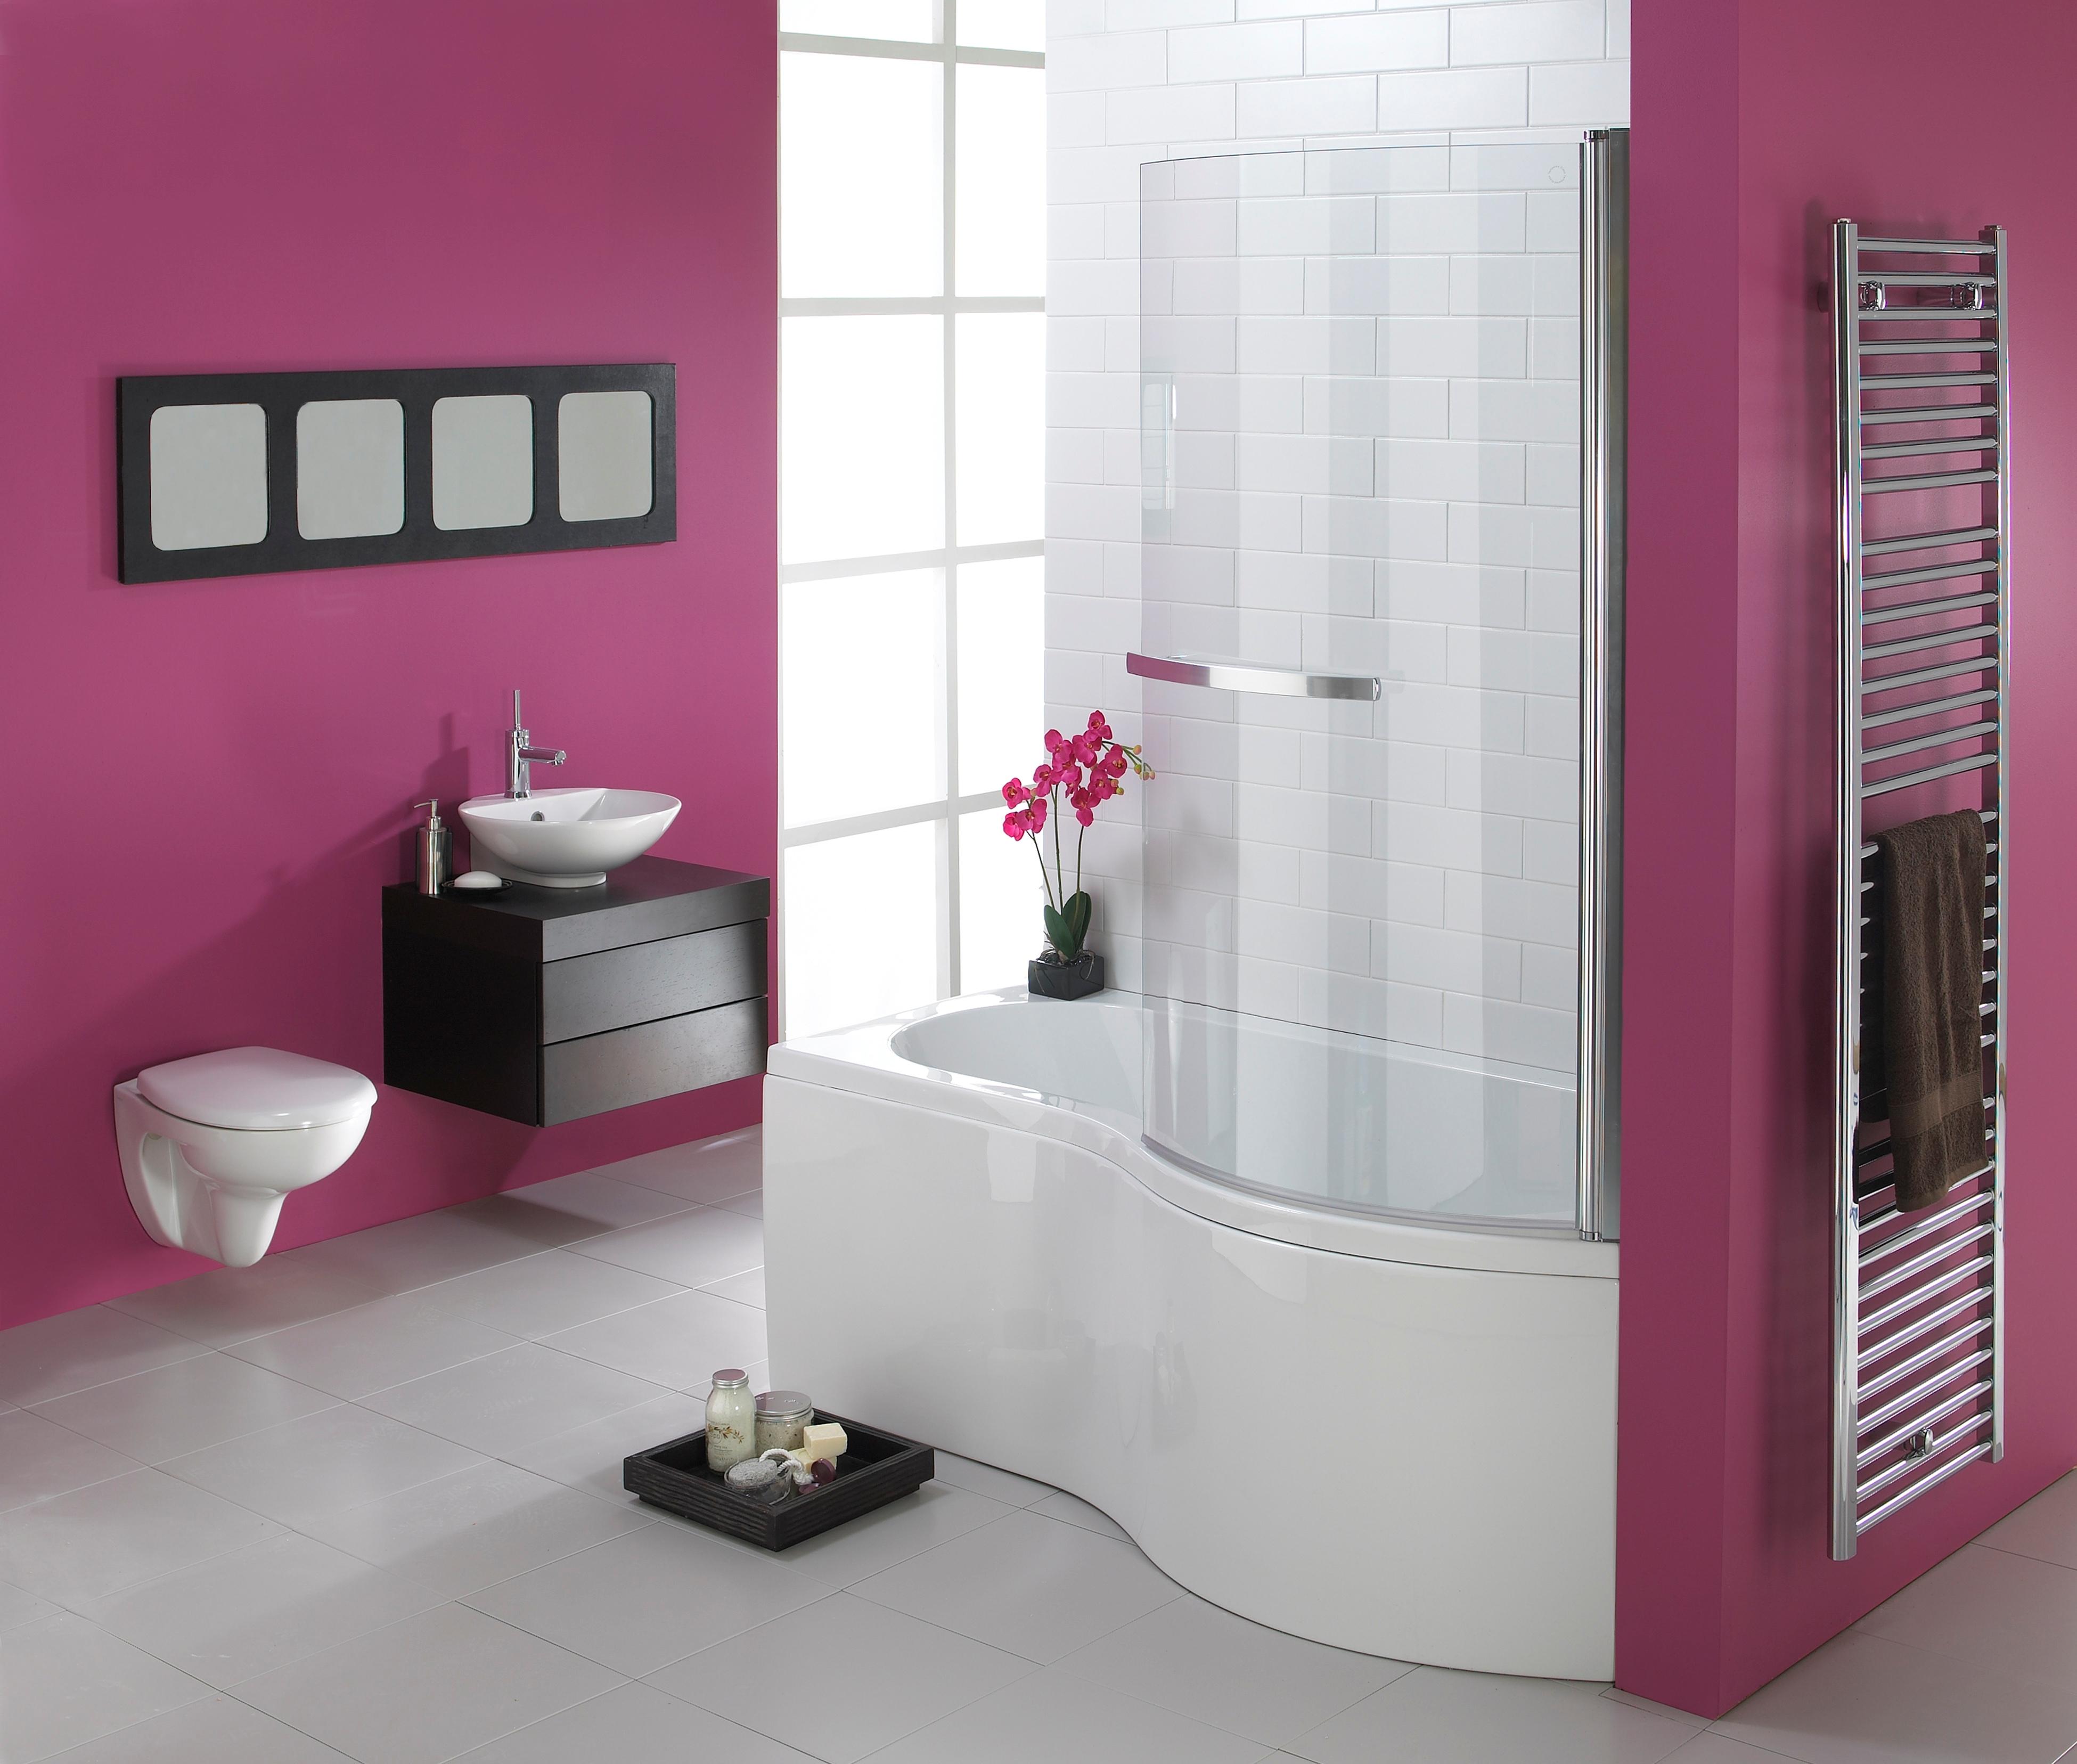 Bathroom Tiles Eastbourne eastbourne bathrooms & tiles - home for all your bathroom requirements